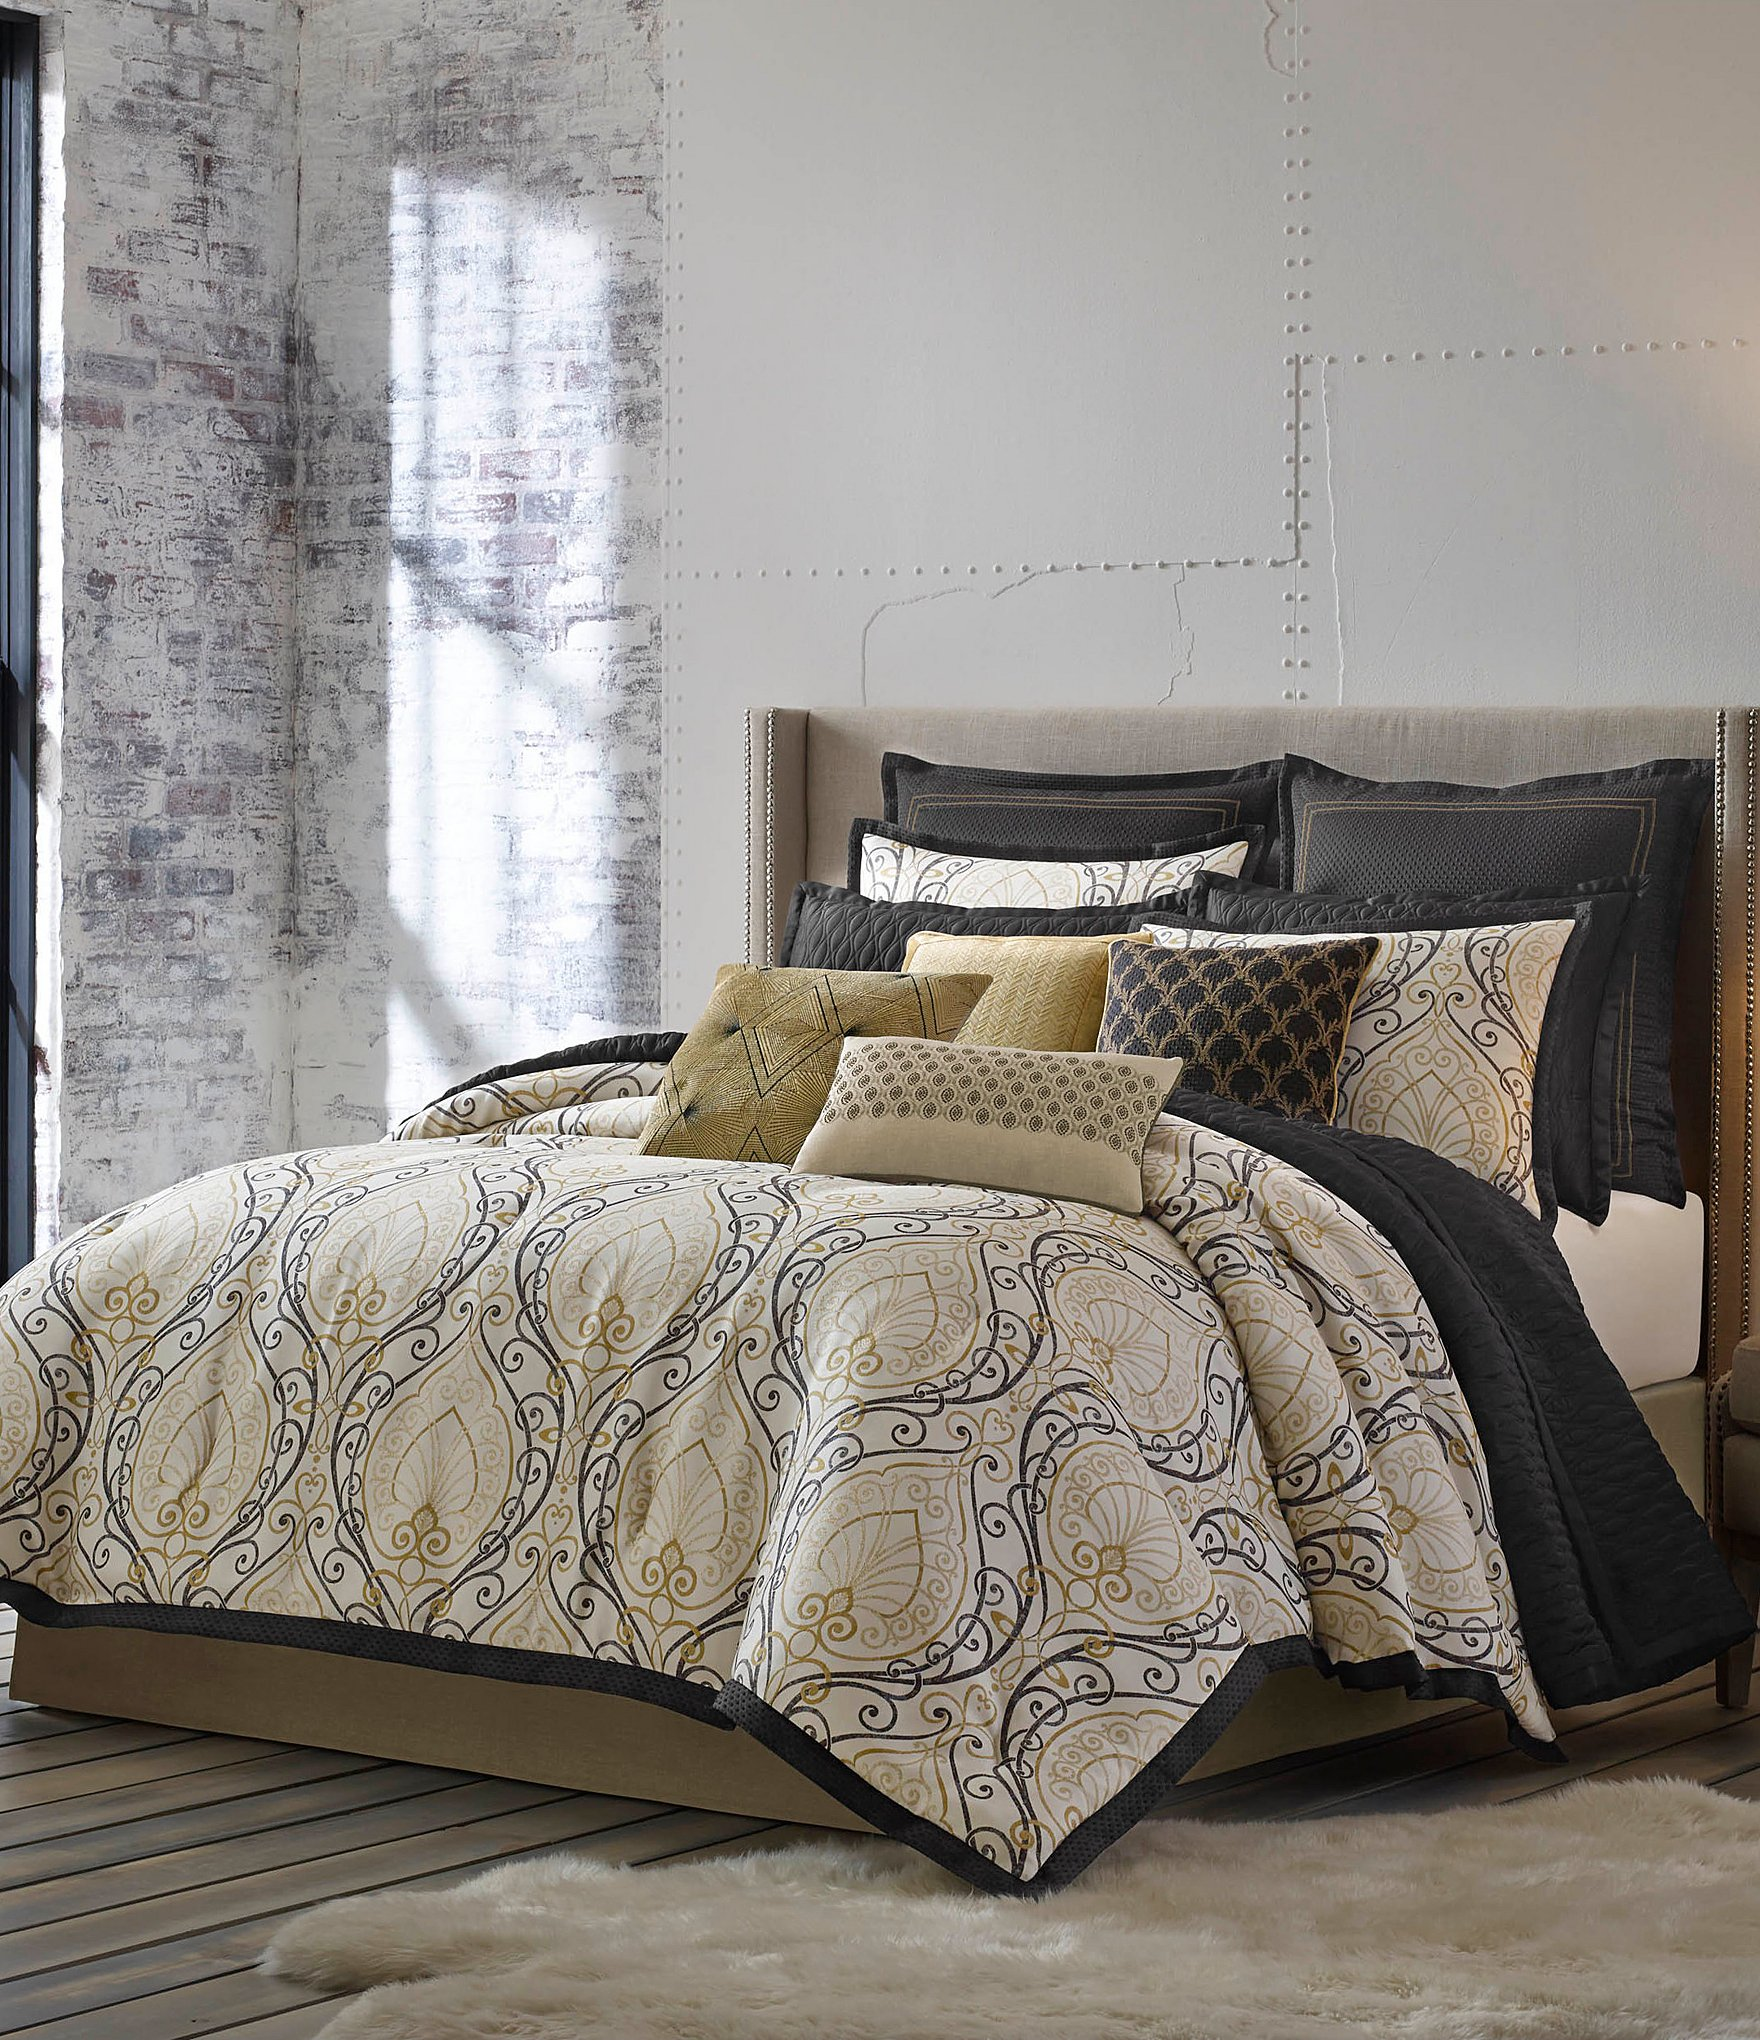 Shop for bedding and bedroom decor at Dillard's. Find the latest styles of sheets, throws, blankets, pillows, duvets, comforters, quilts and more at Dillard's.